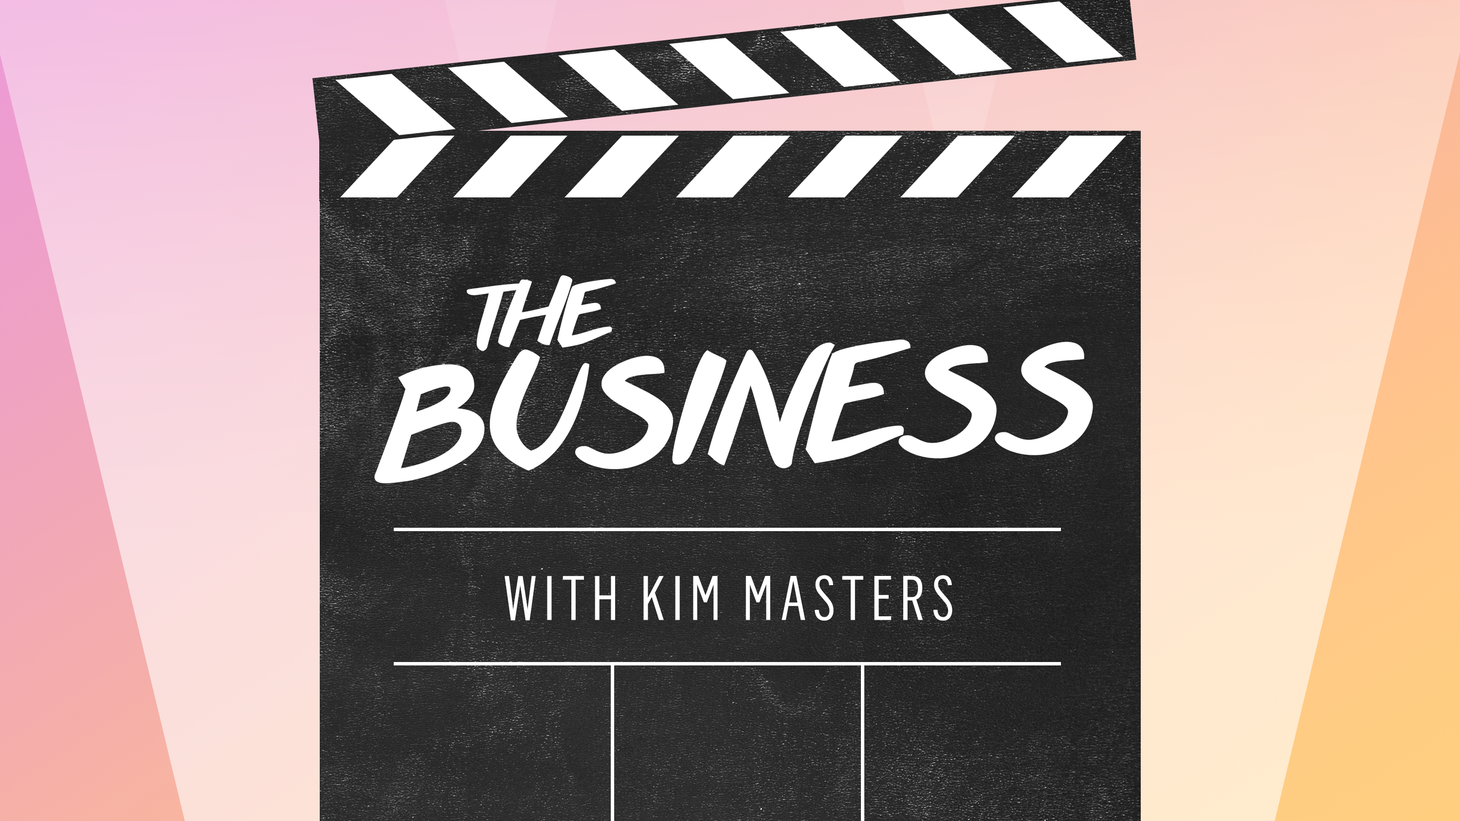 """This week on The Business, we grill U.S. Attorney General John Ashcroft about his new anti-piracy initiative.  Then, we do not pass go, we do not collect $200, we go directly to """"movie jail.""""  And once again, we see how porn leads Hollywood into the digital future. Guests include US Attorney General John Ashcroft, Alan Gasmer, SVP of the William Morris Agency, Kevin Misher, past president of production at Universal Pictures, Digital Playground Founder Joone and Tim Connelly, publisher and editor of AVN, Adult Video News."""